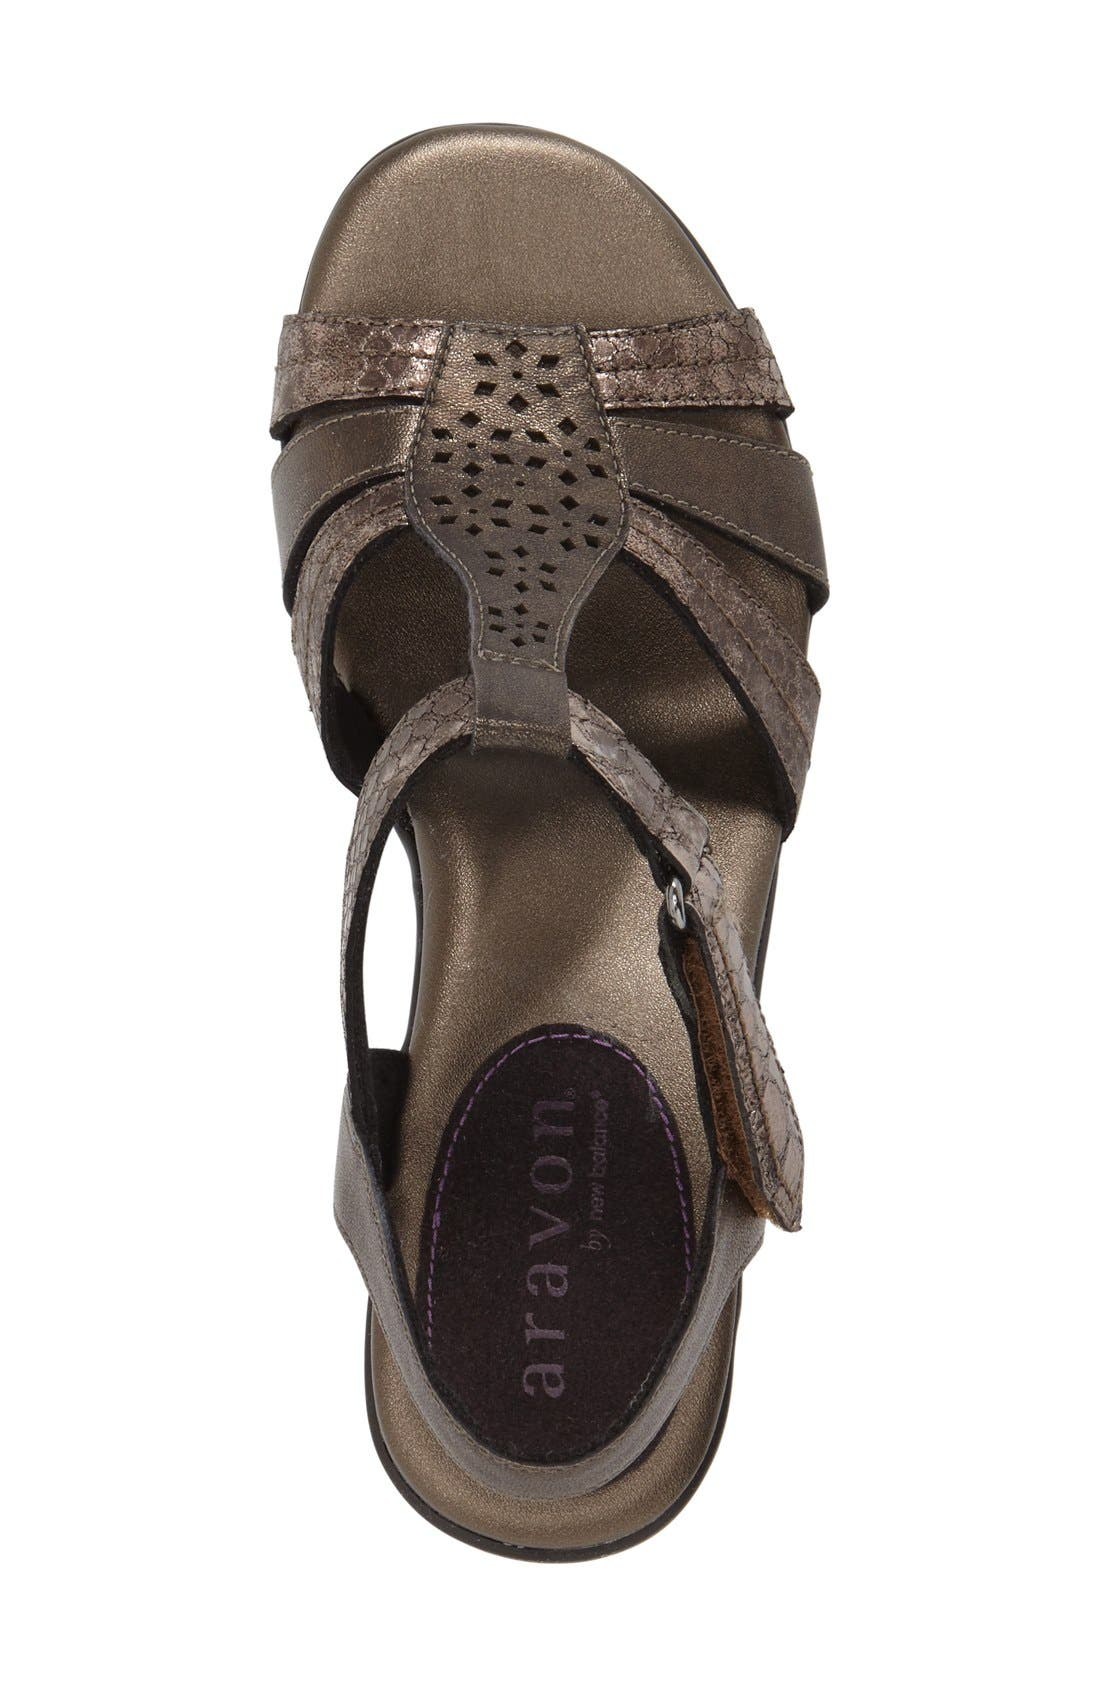 Alternate Image 3  - Aravon 'Mary' T-Strap Sandal (Women)